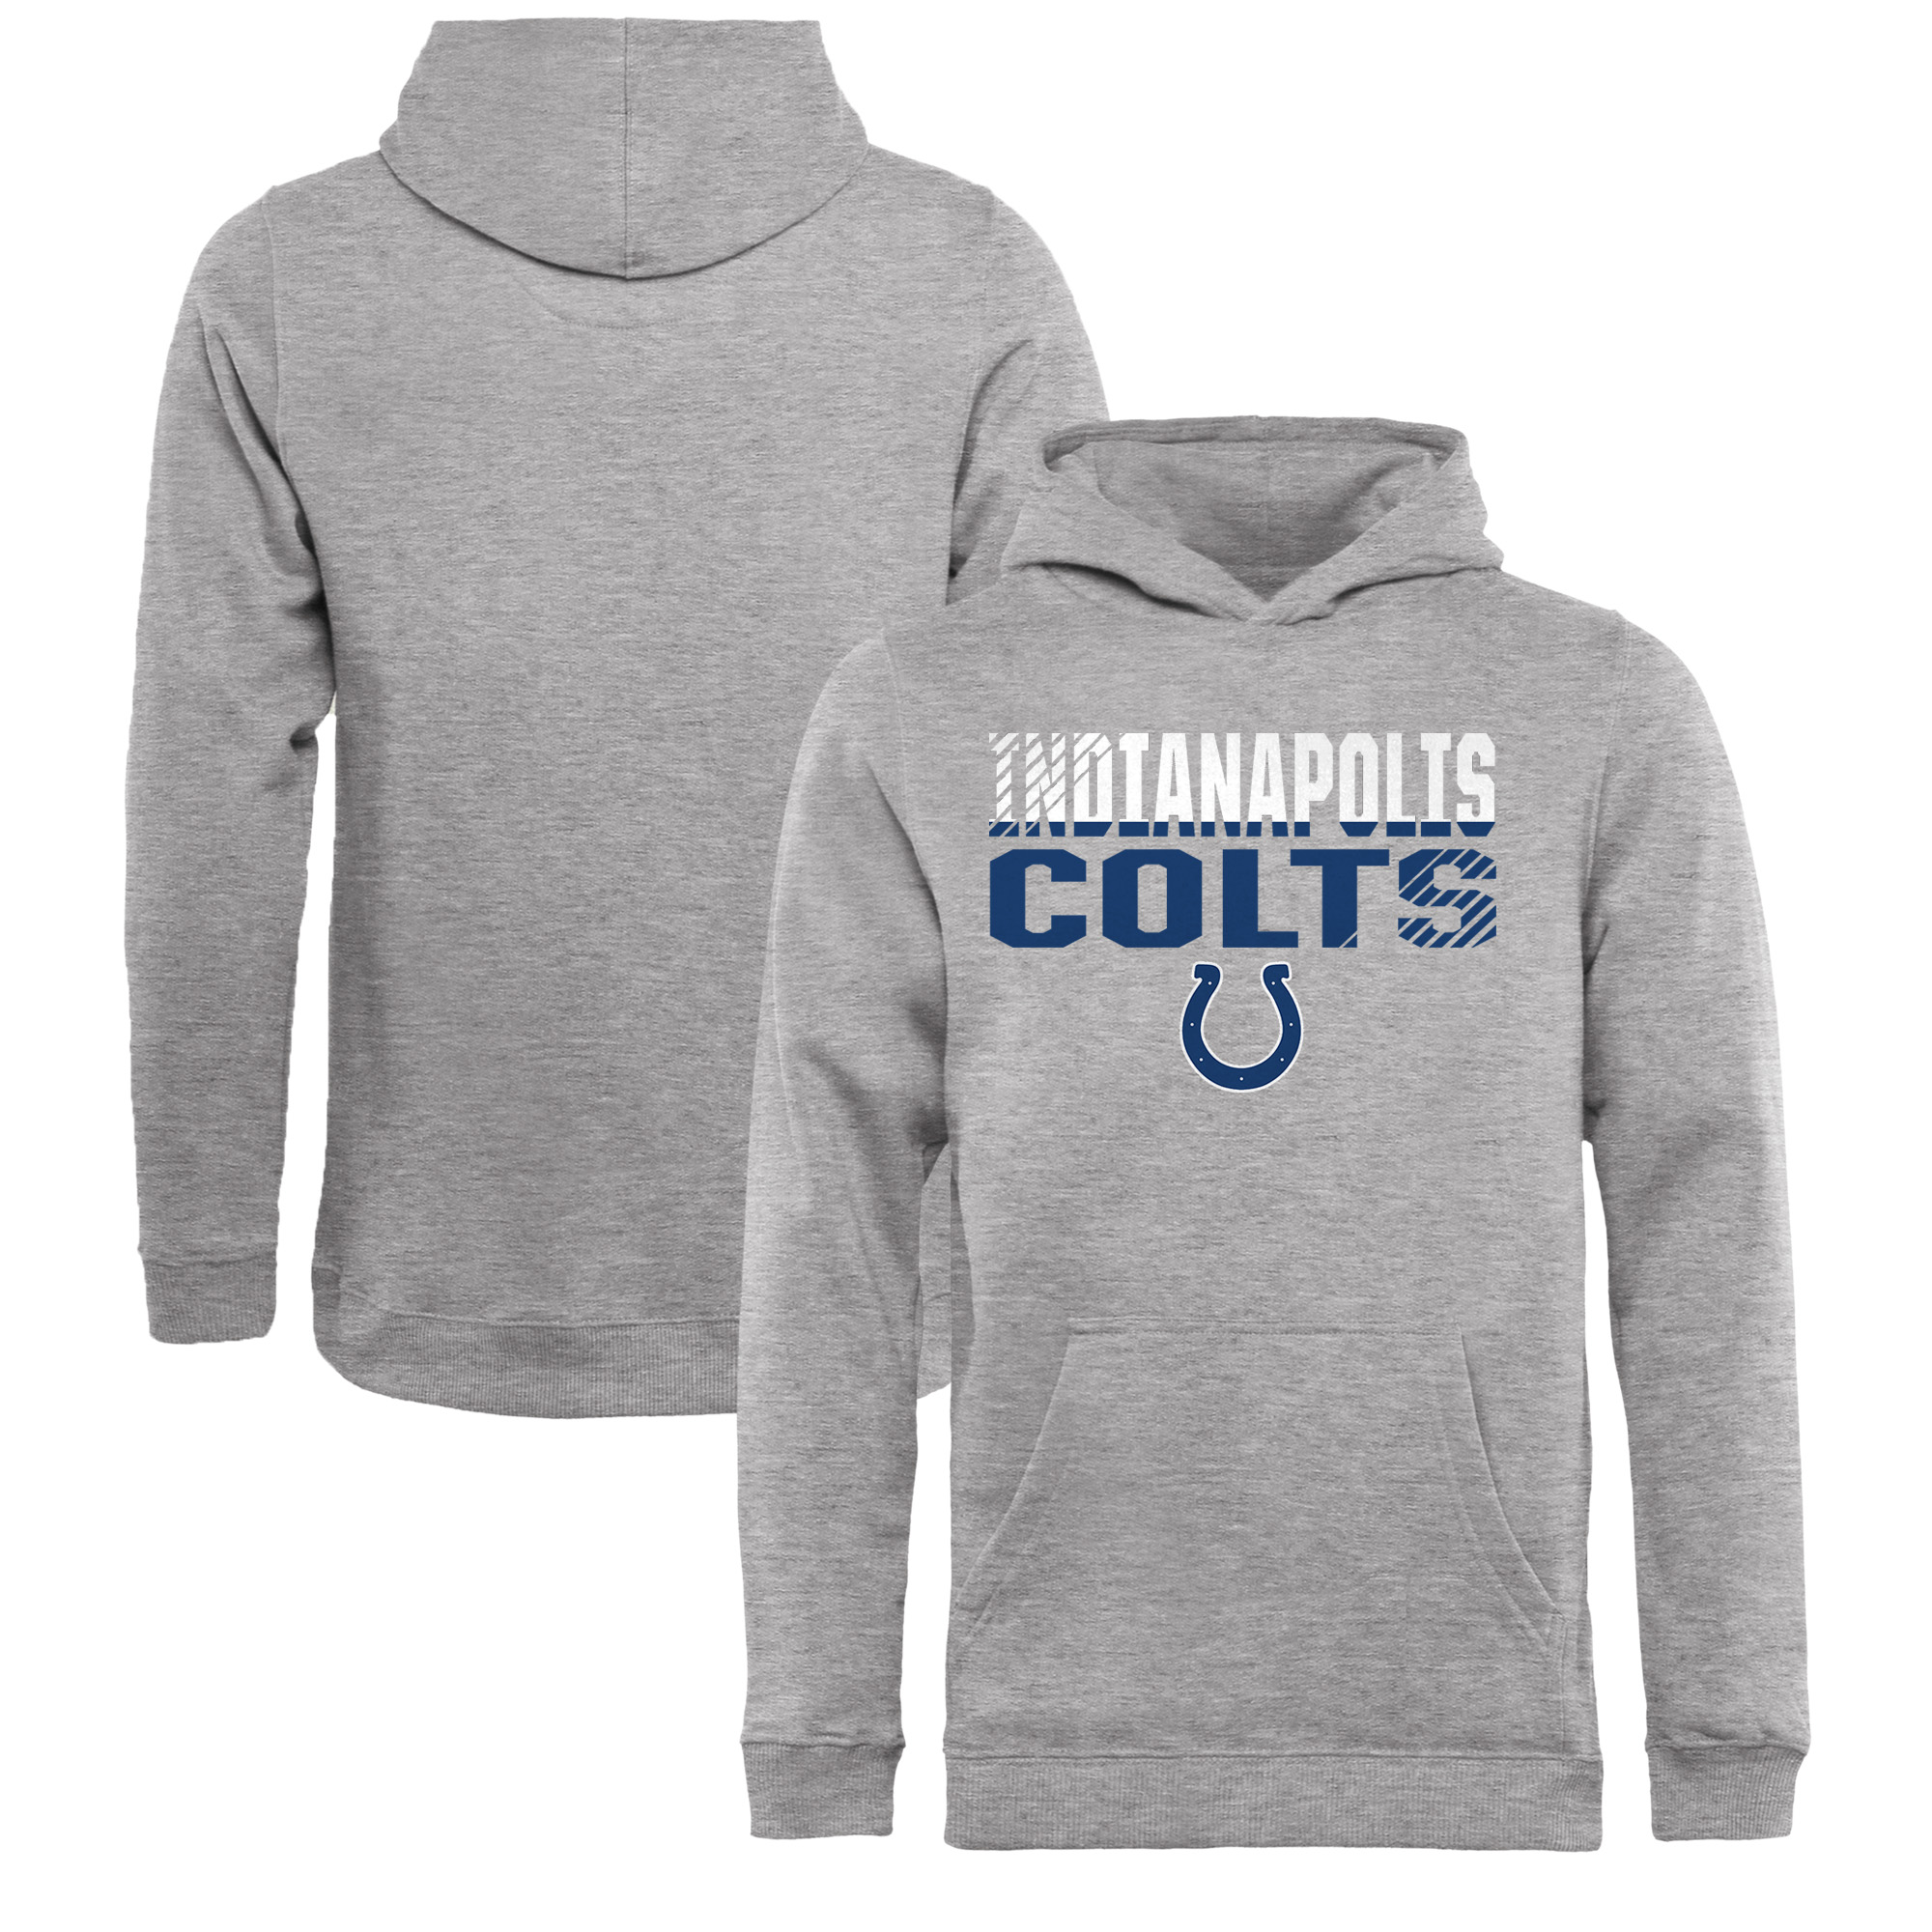 Indianapolis Colts NFL Pro Line by Fanatics Branded Youth Iconic Collection Fade Out Pullover Hoodie - Ash